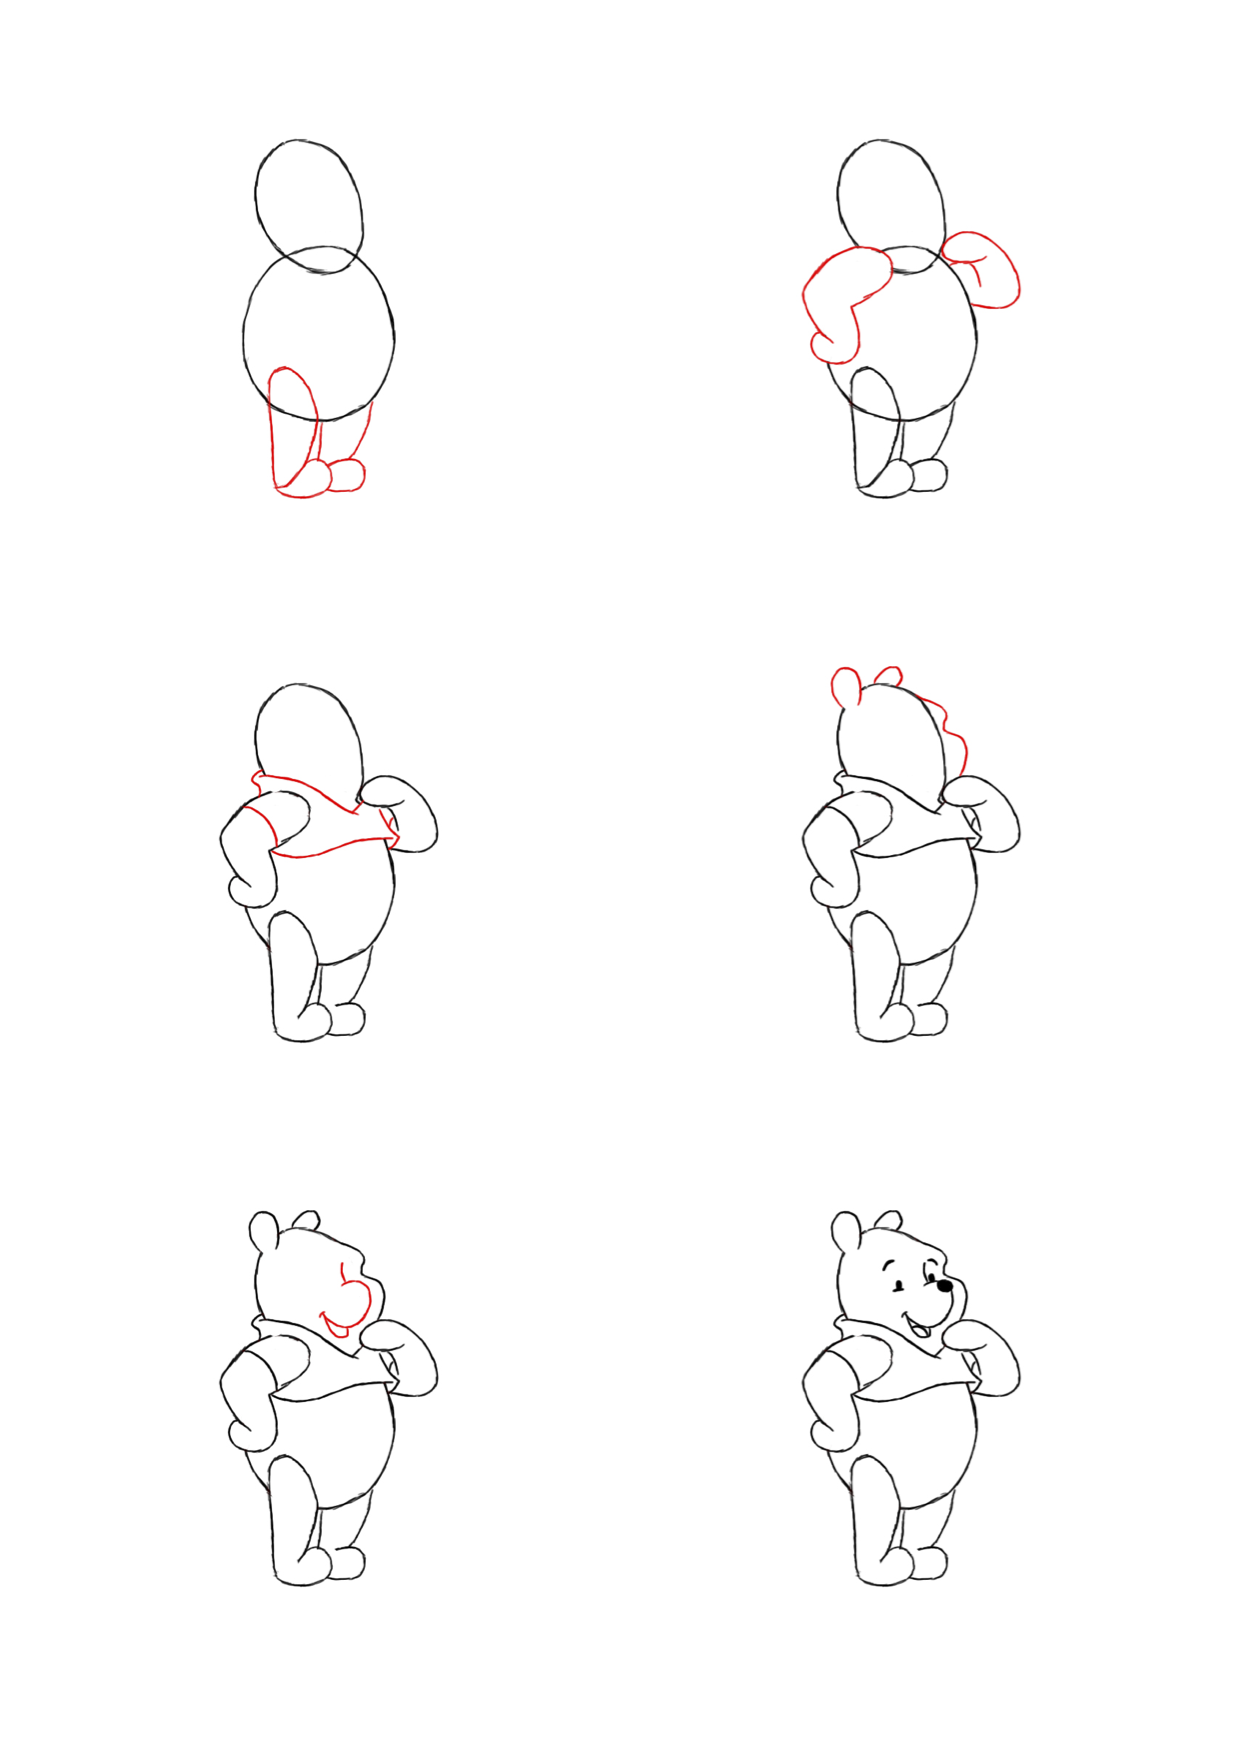 how to draw pooh bear how to draw baby pooh by dawn drawing cartoon characters pooh draw bear to how